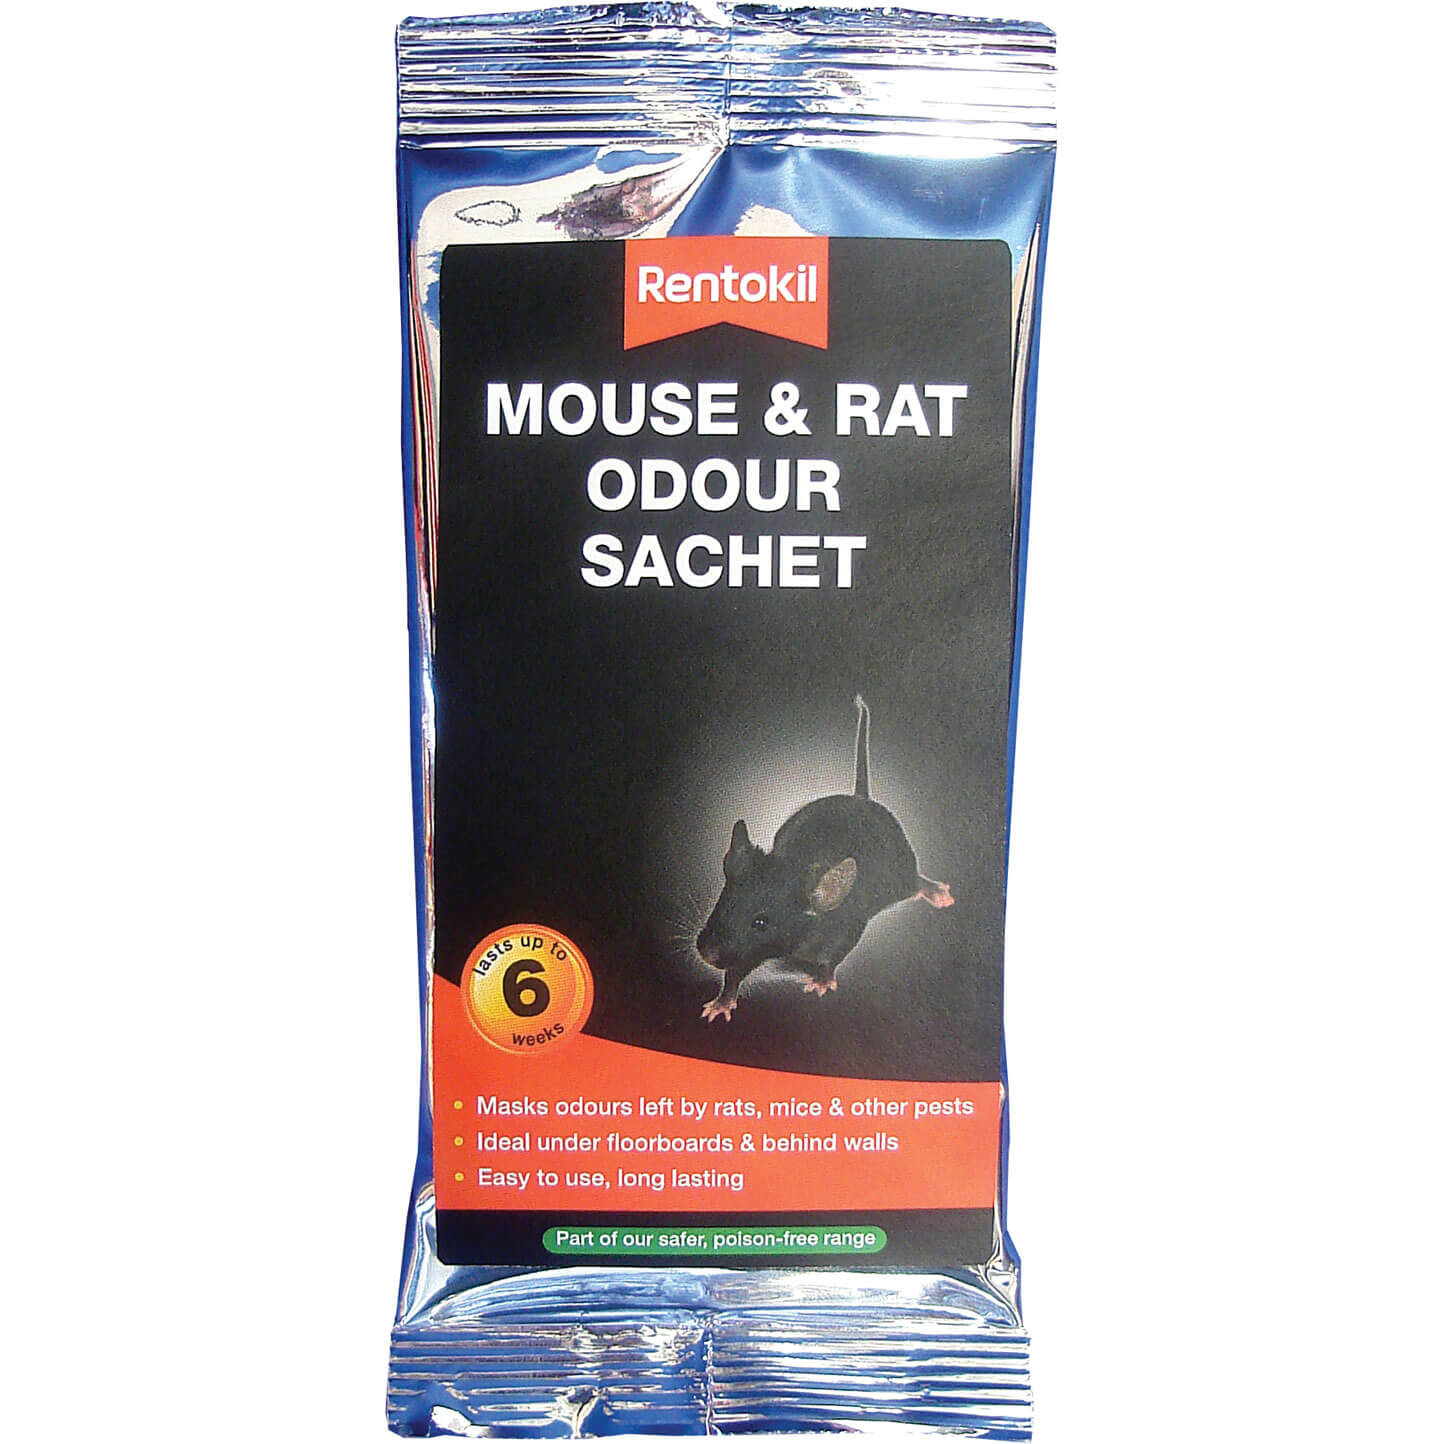 Image of Rentokil Mouse and Rat Odour Masking Sachet